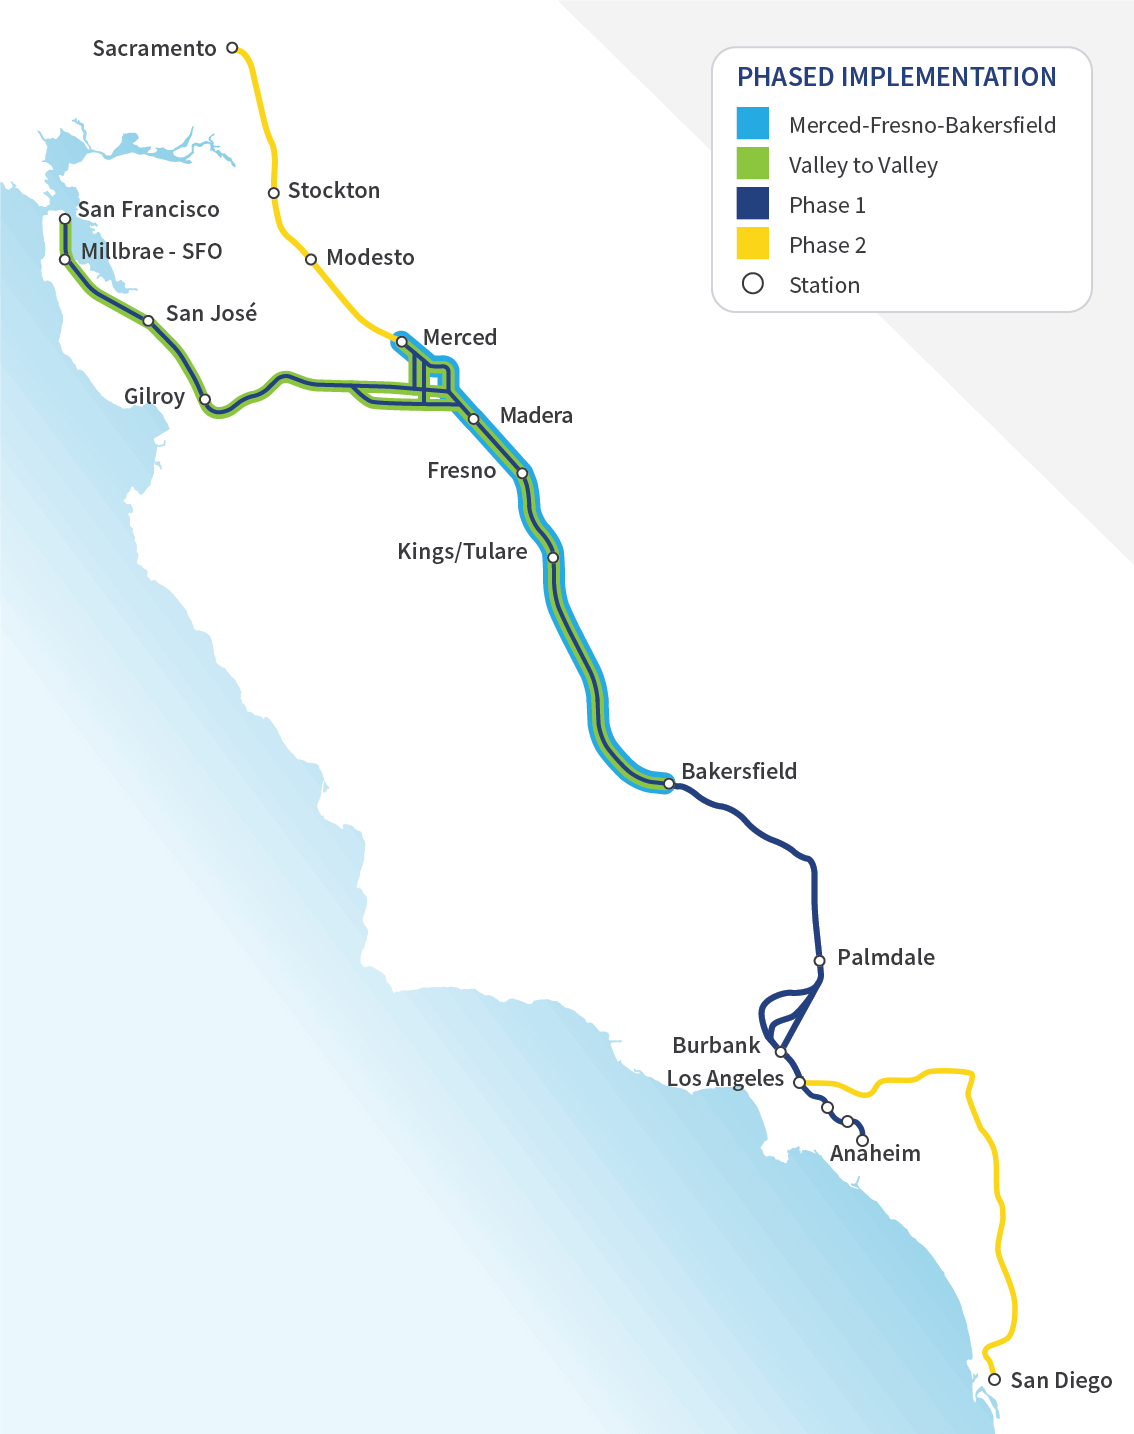 Map of California with each phase of construction highlighted.